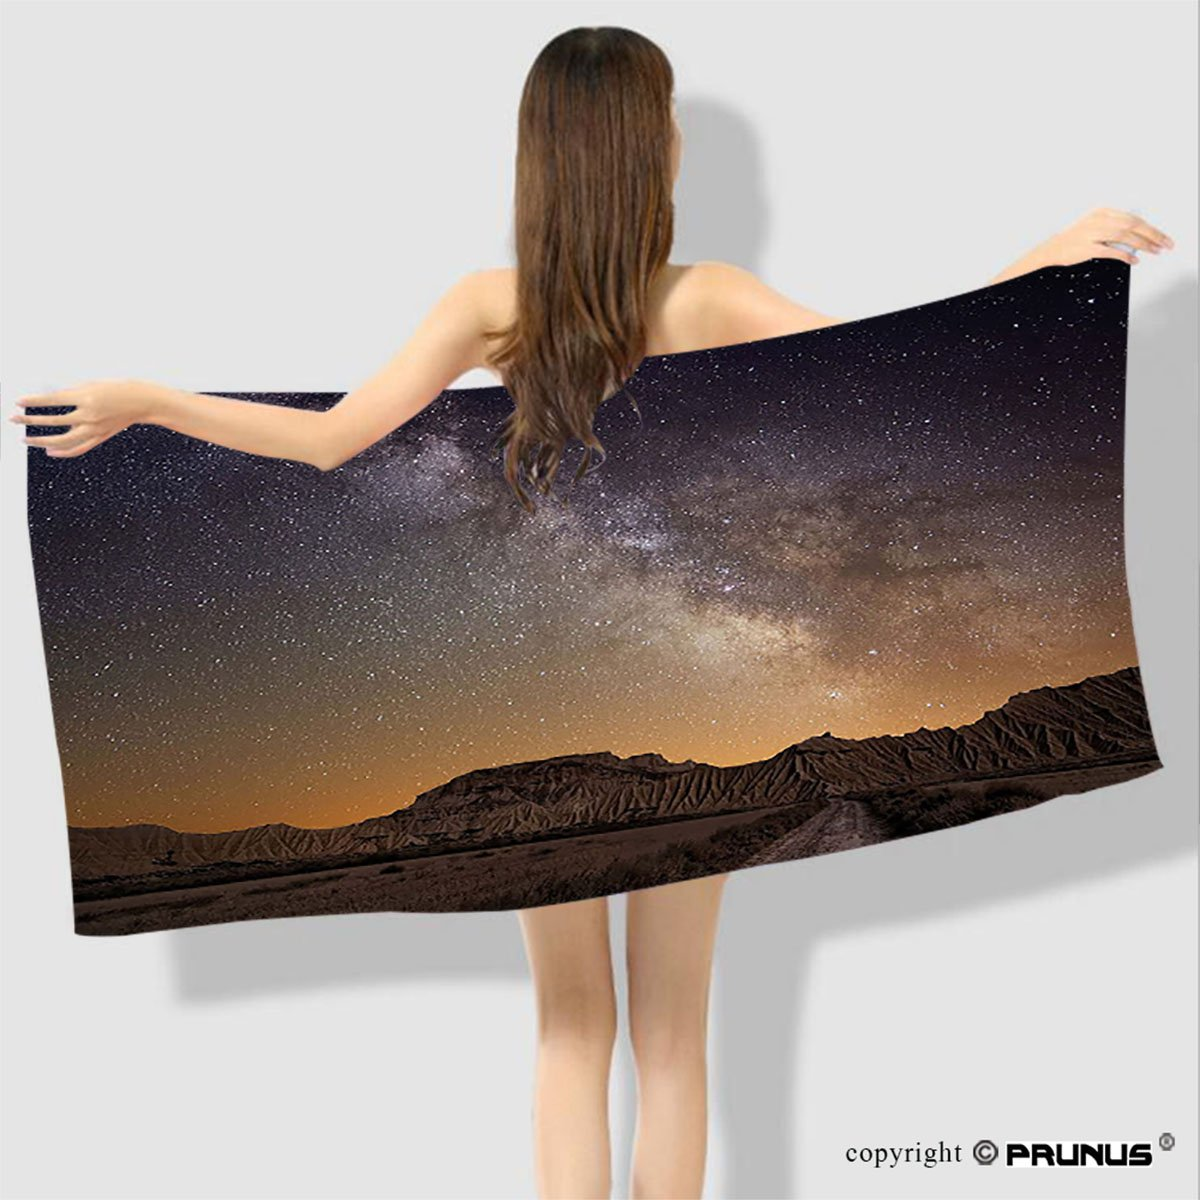 PRUNUS Caribbean Hawaii Seaside Hand Towel Milky Way over Desert of Bardenas Spain Ethereal View Hills Arid Country Bath Towels For Bathroom and Travel Use-63''x31''